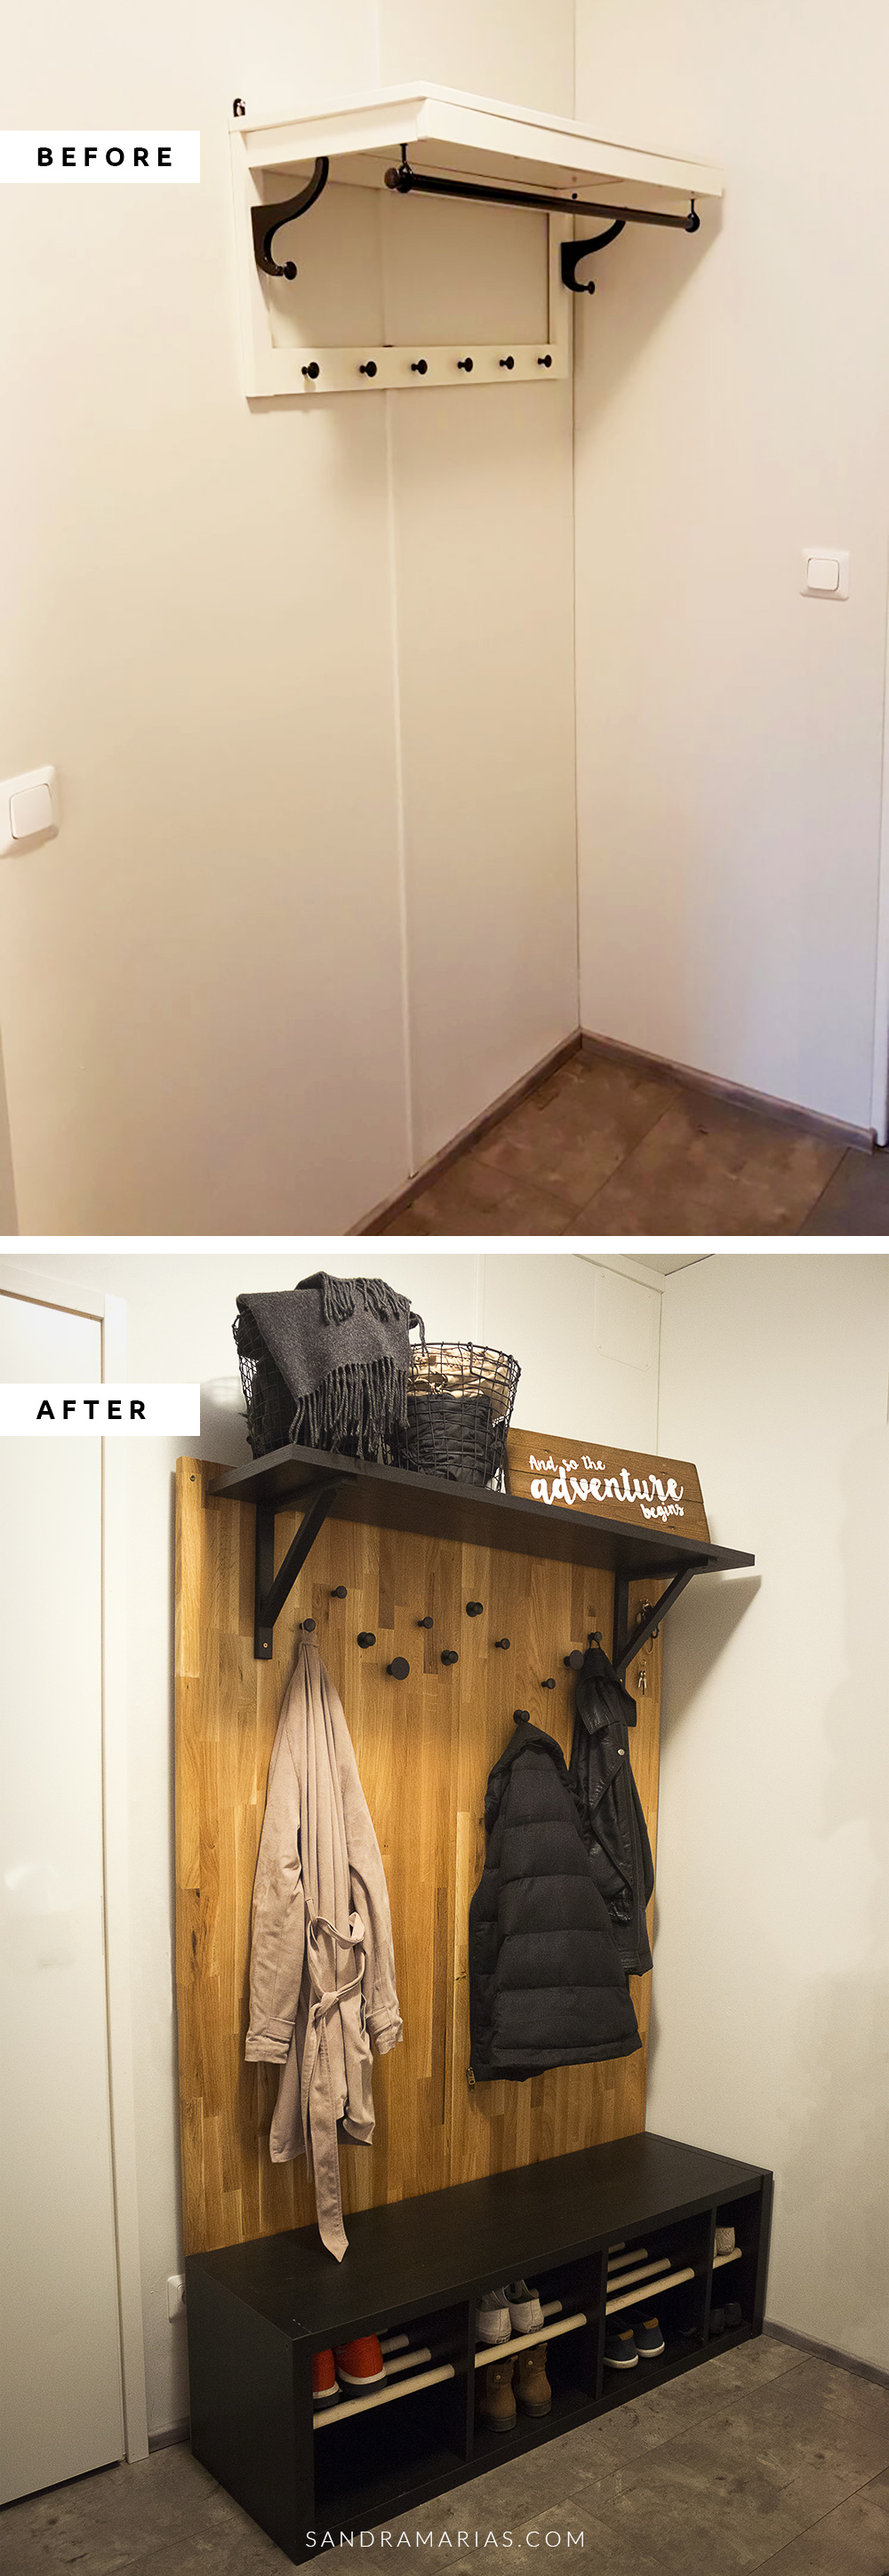 IKEA HACK: before and after